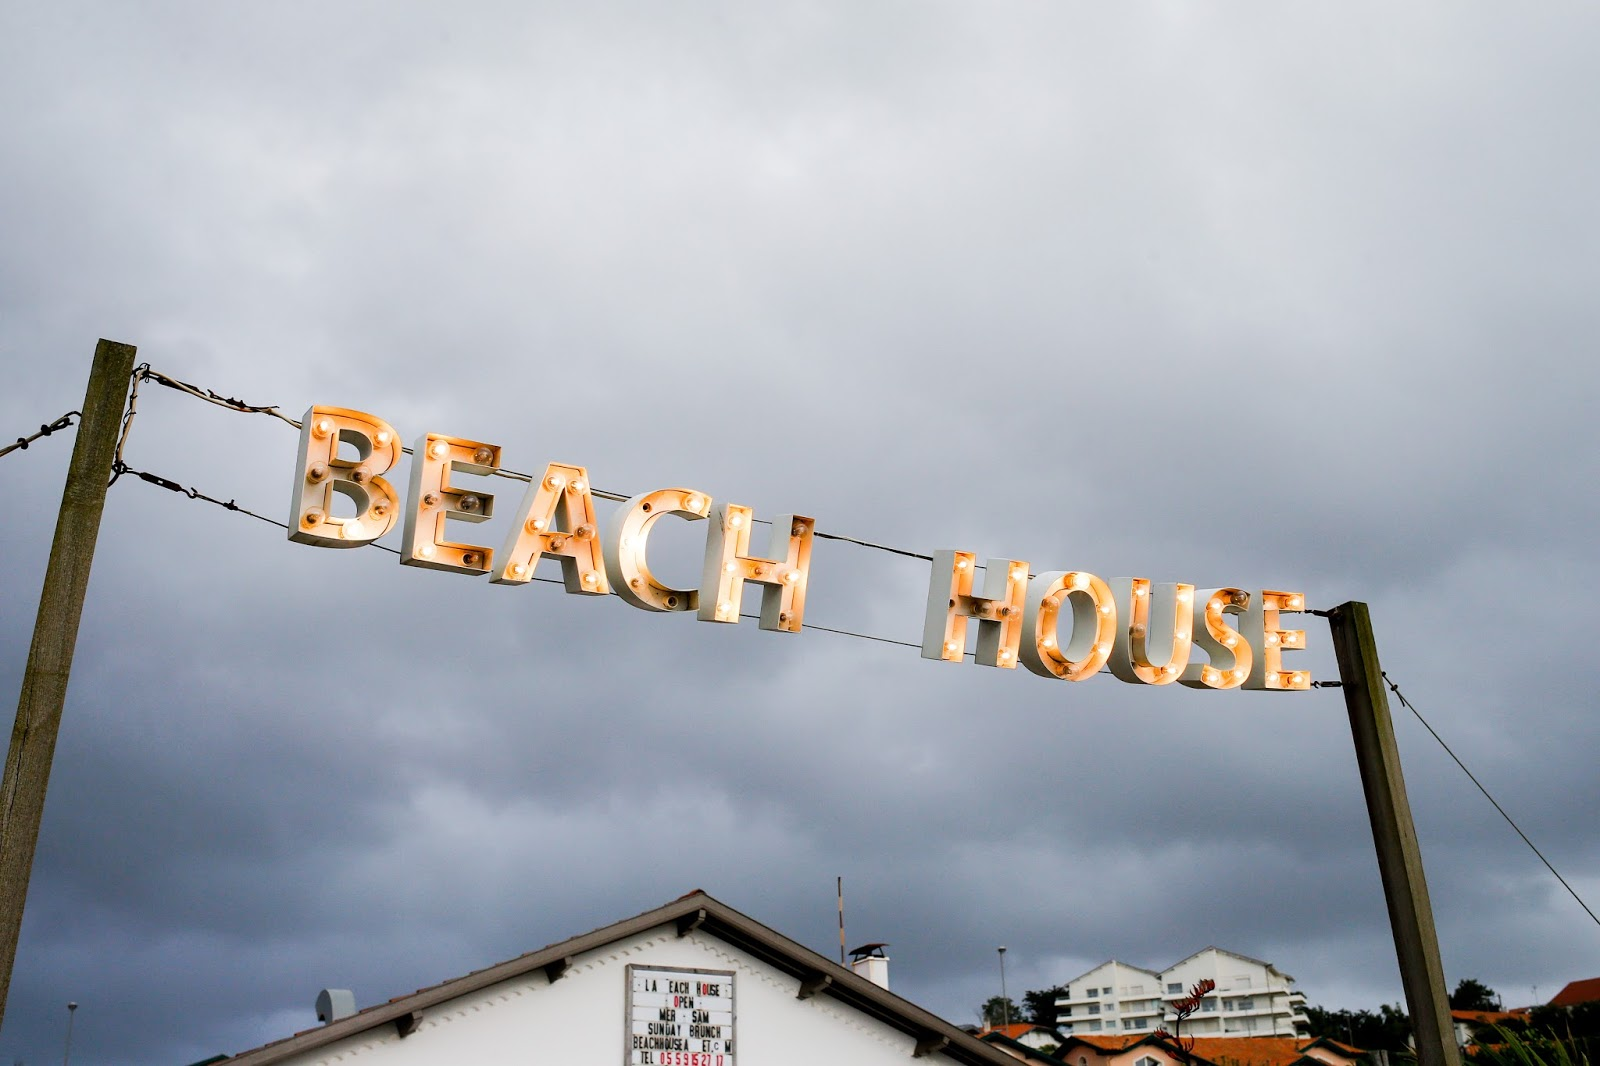 beach house anglet parisgrenoble